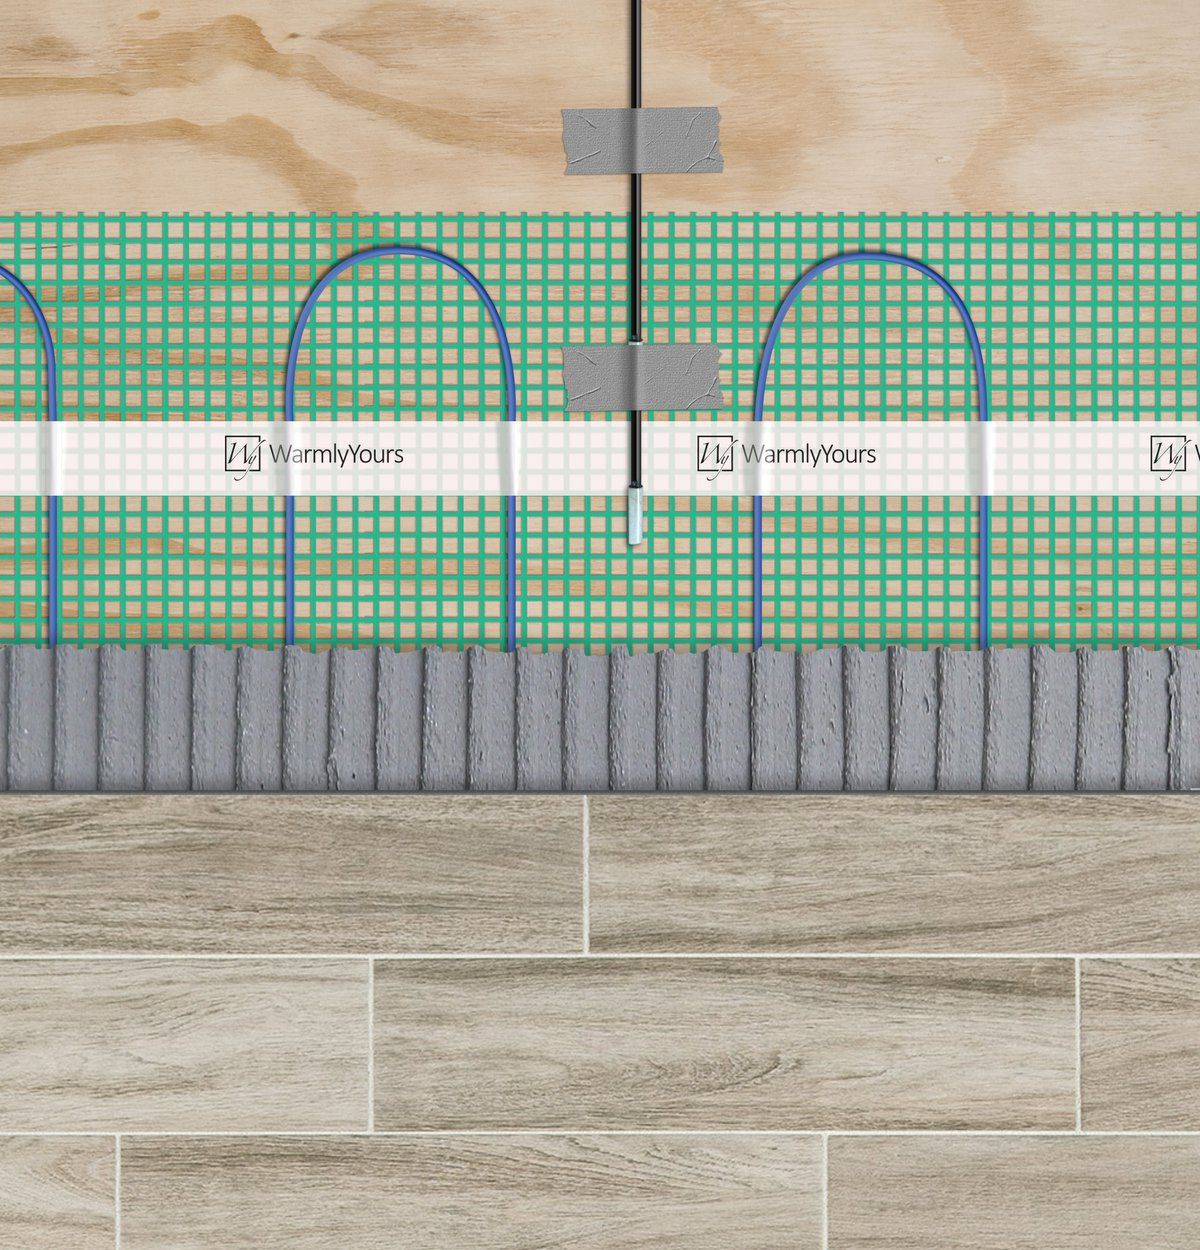 How To Install Floor Heating Under Tile Heated